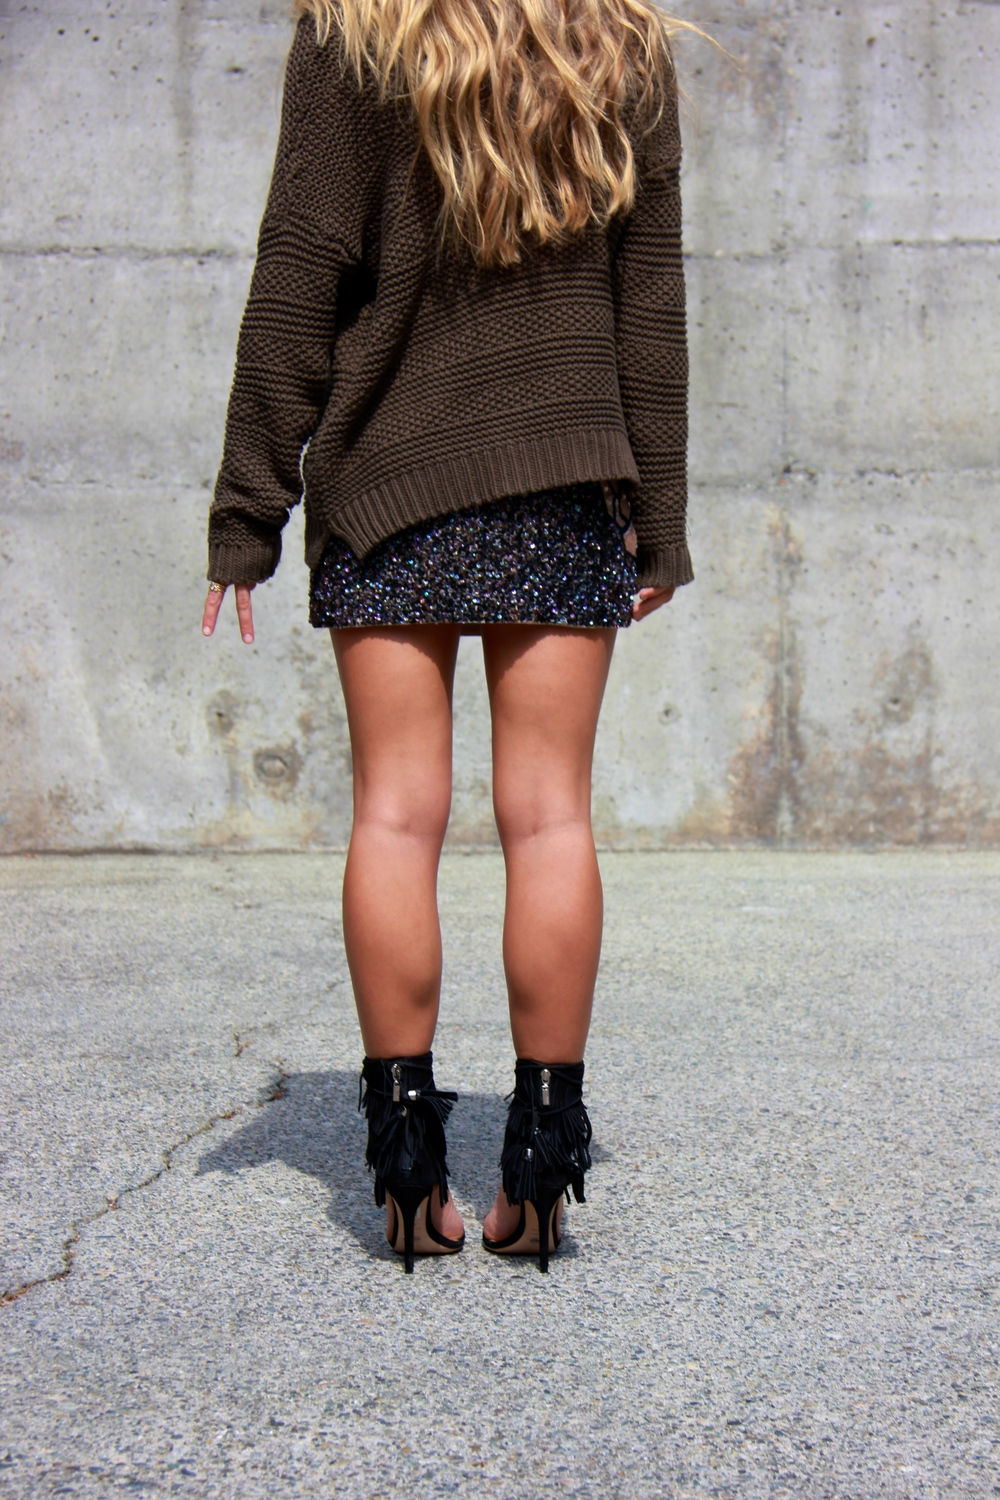 Wearing: F21 Sweater, All Saints Skirt, Elizabeth and James Bag, Schutz Heels